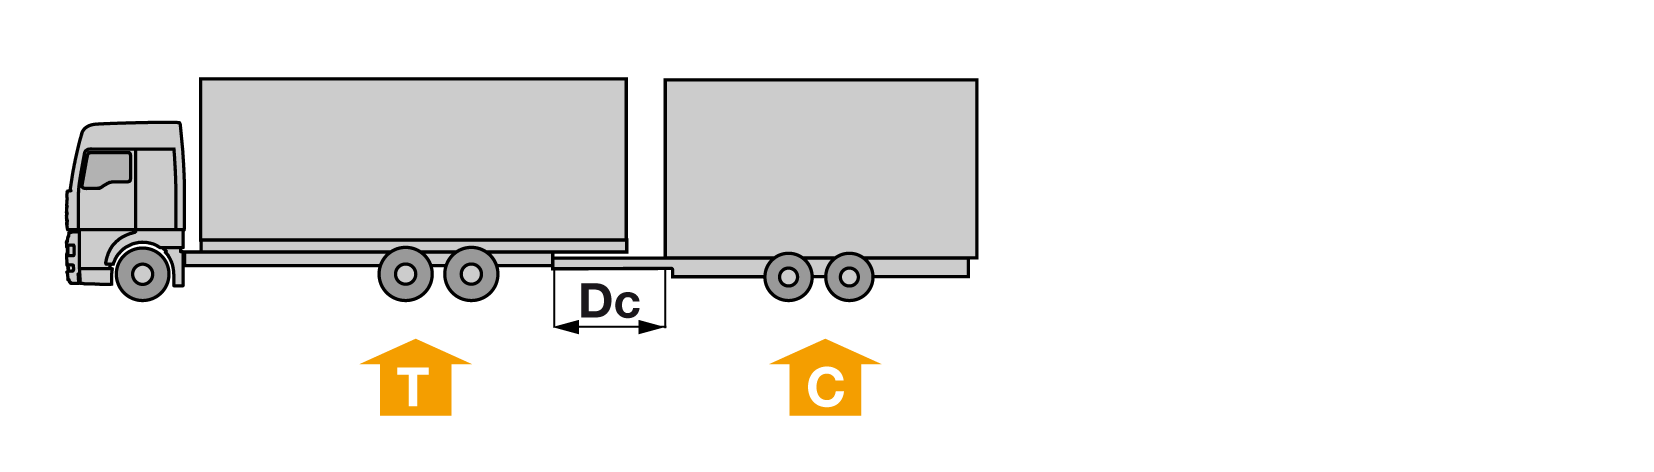 Dc-value Towing vehicle and central-axle trailer